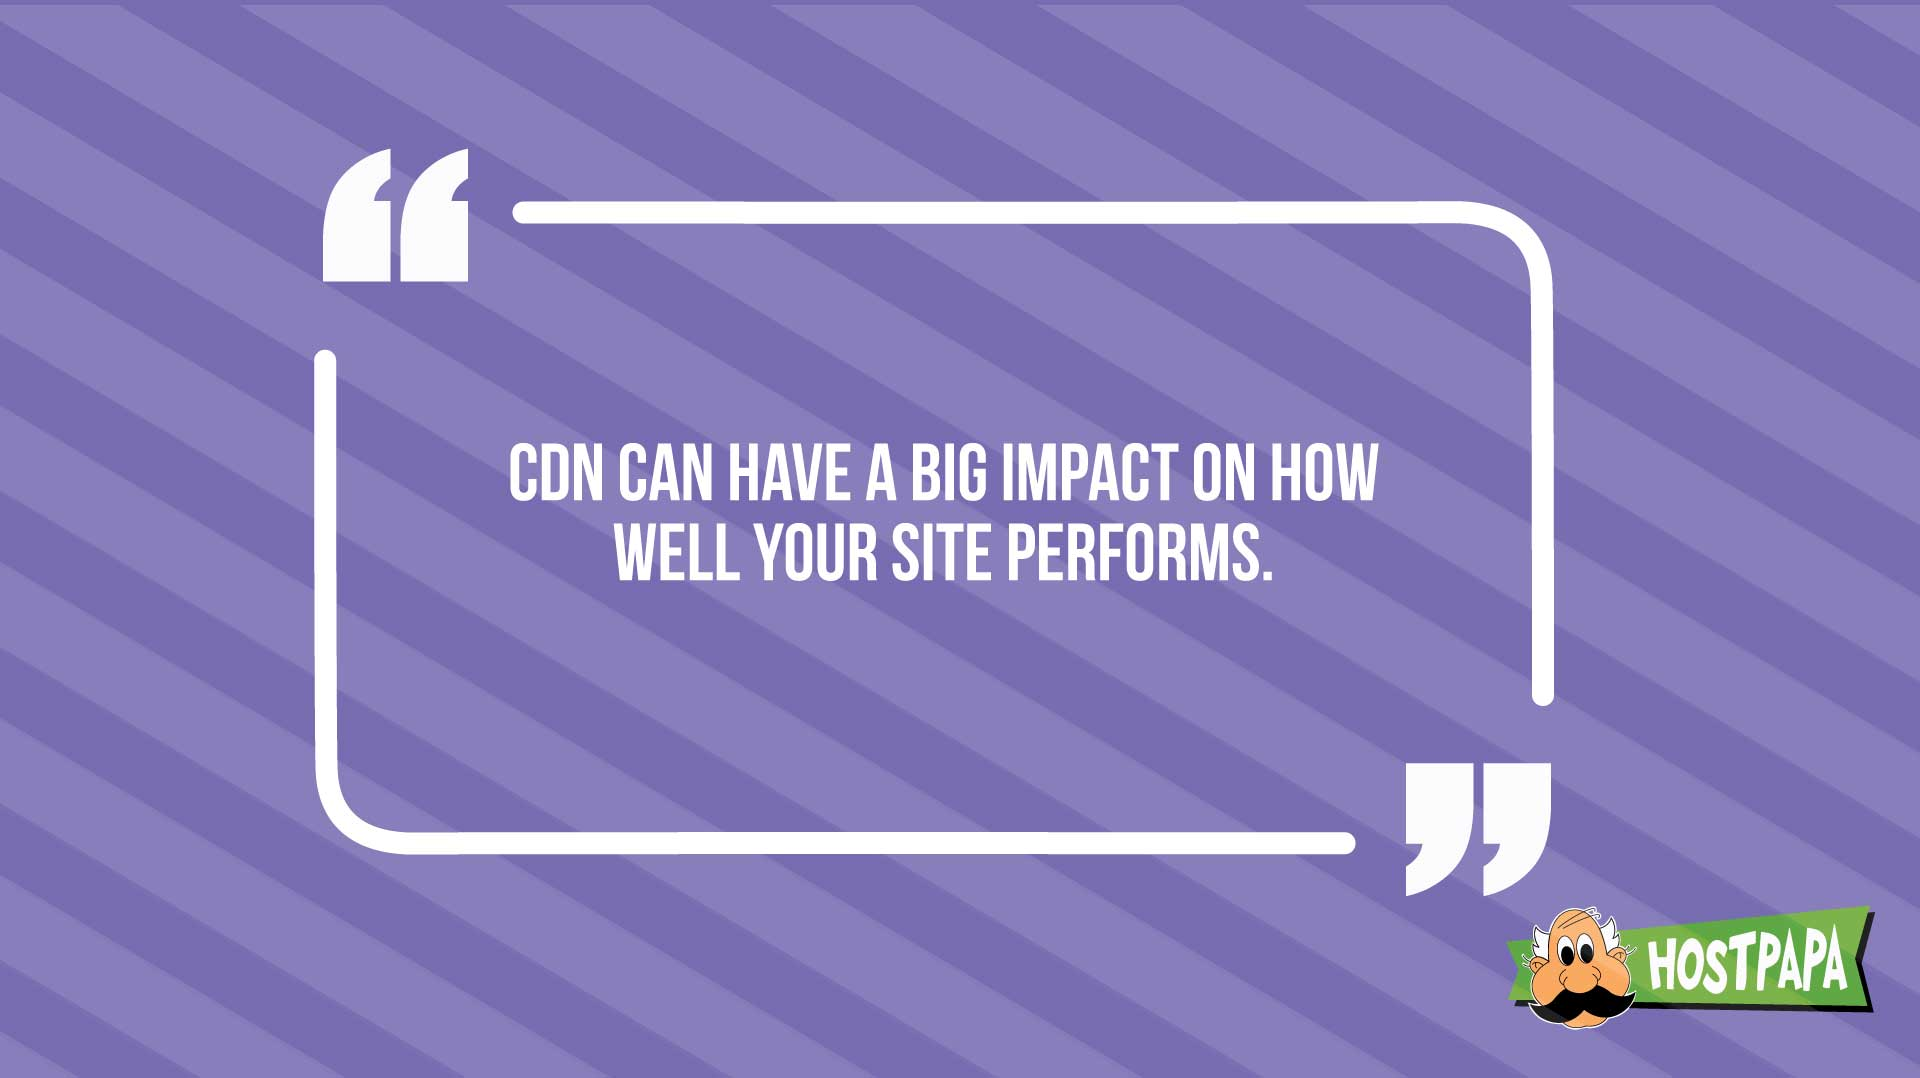 CDN have a big impacto on how well your site performs.